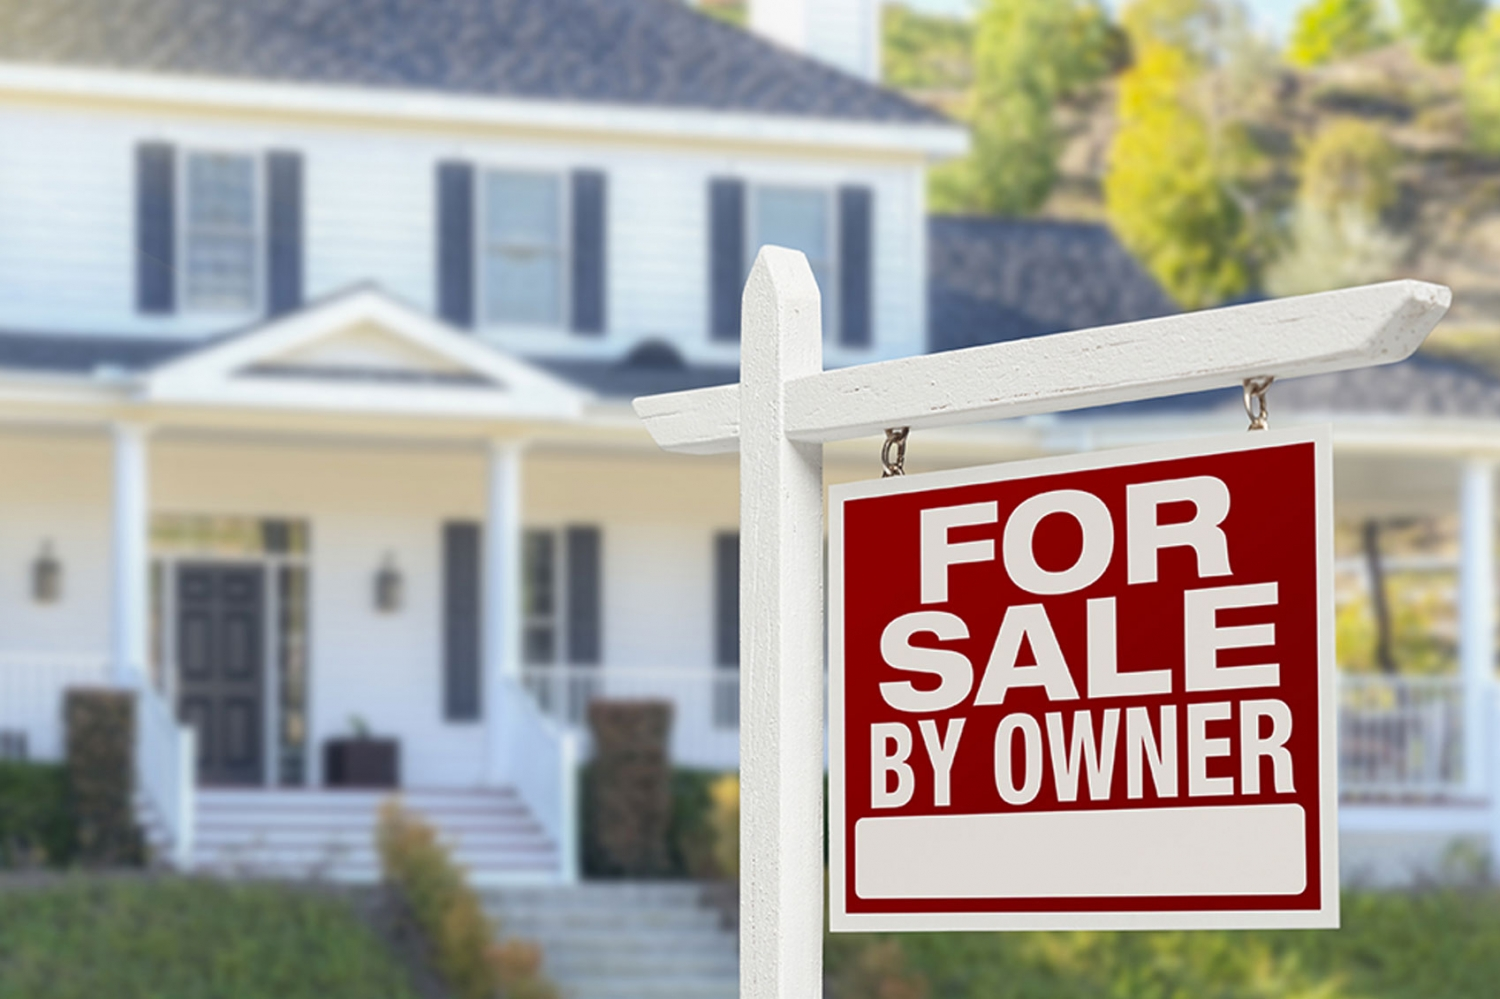 So you want to sell your home yourself?